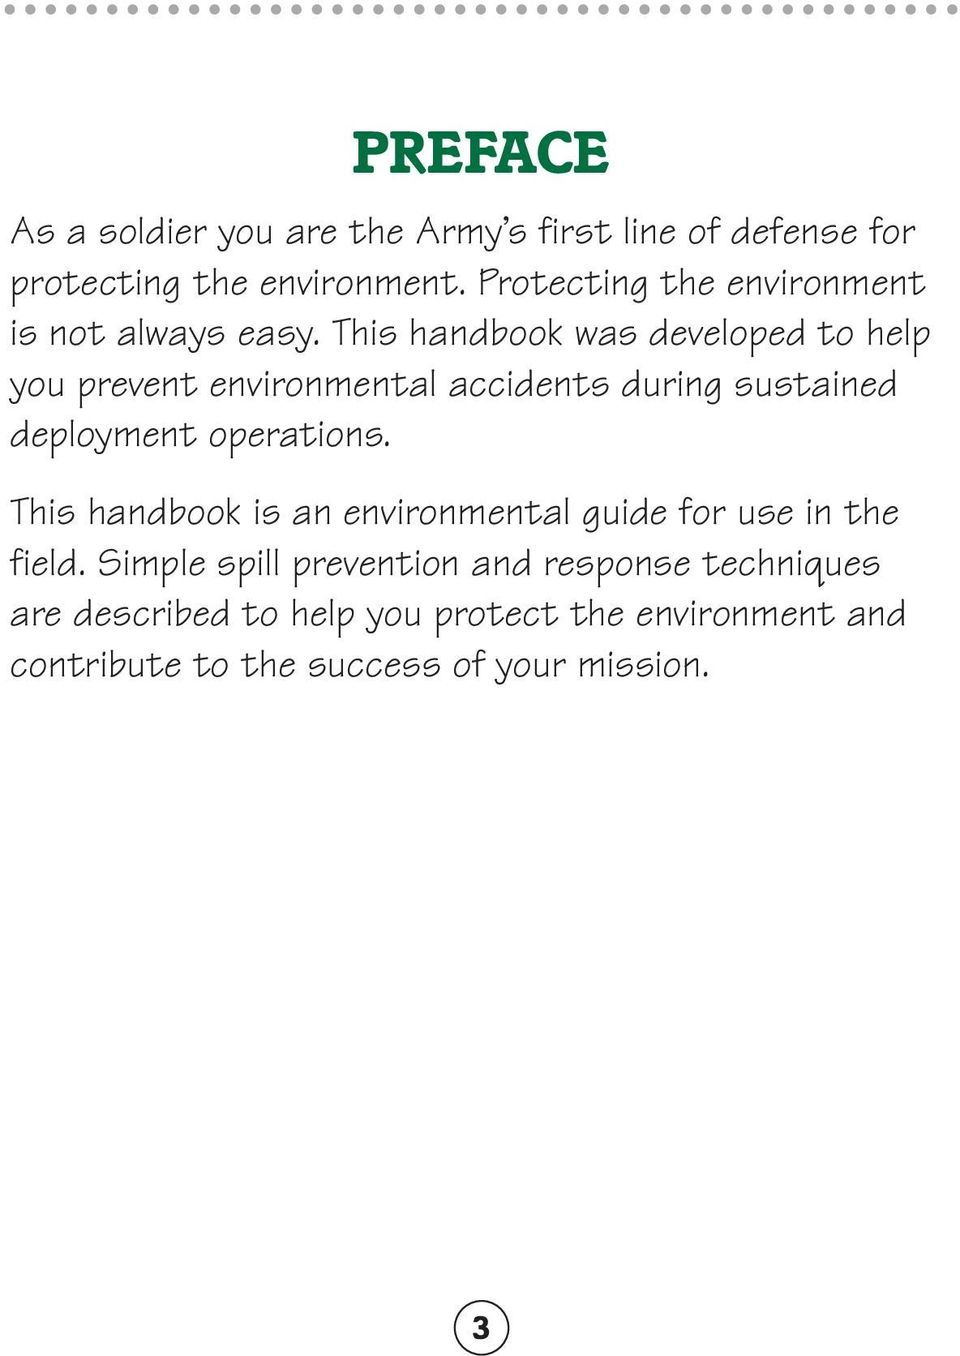 This handbook was developed to help you prevent environmental accidents during sustained deployment operations.